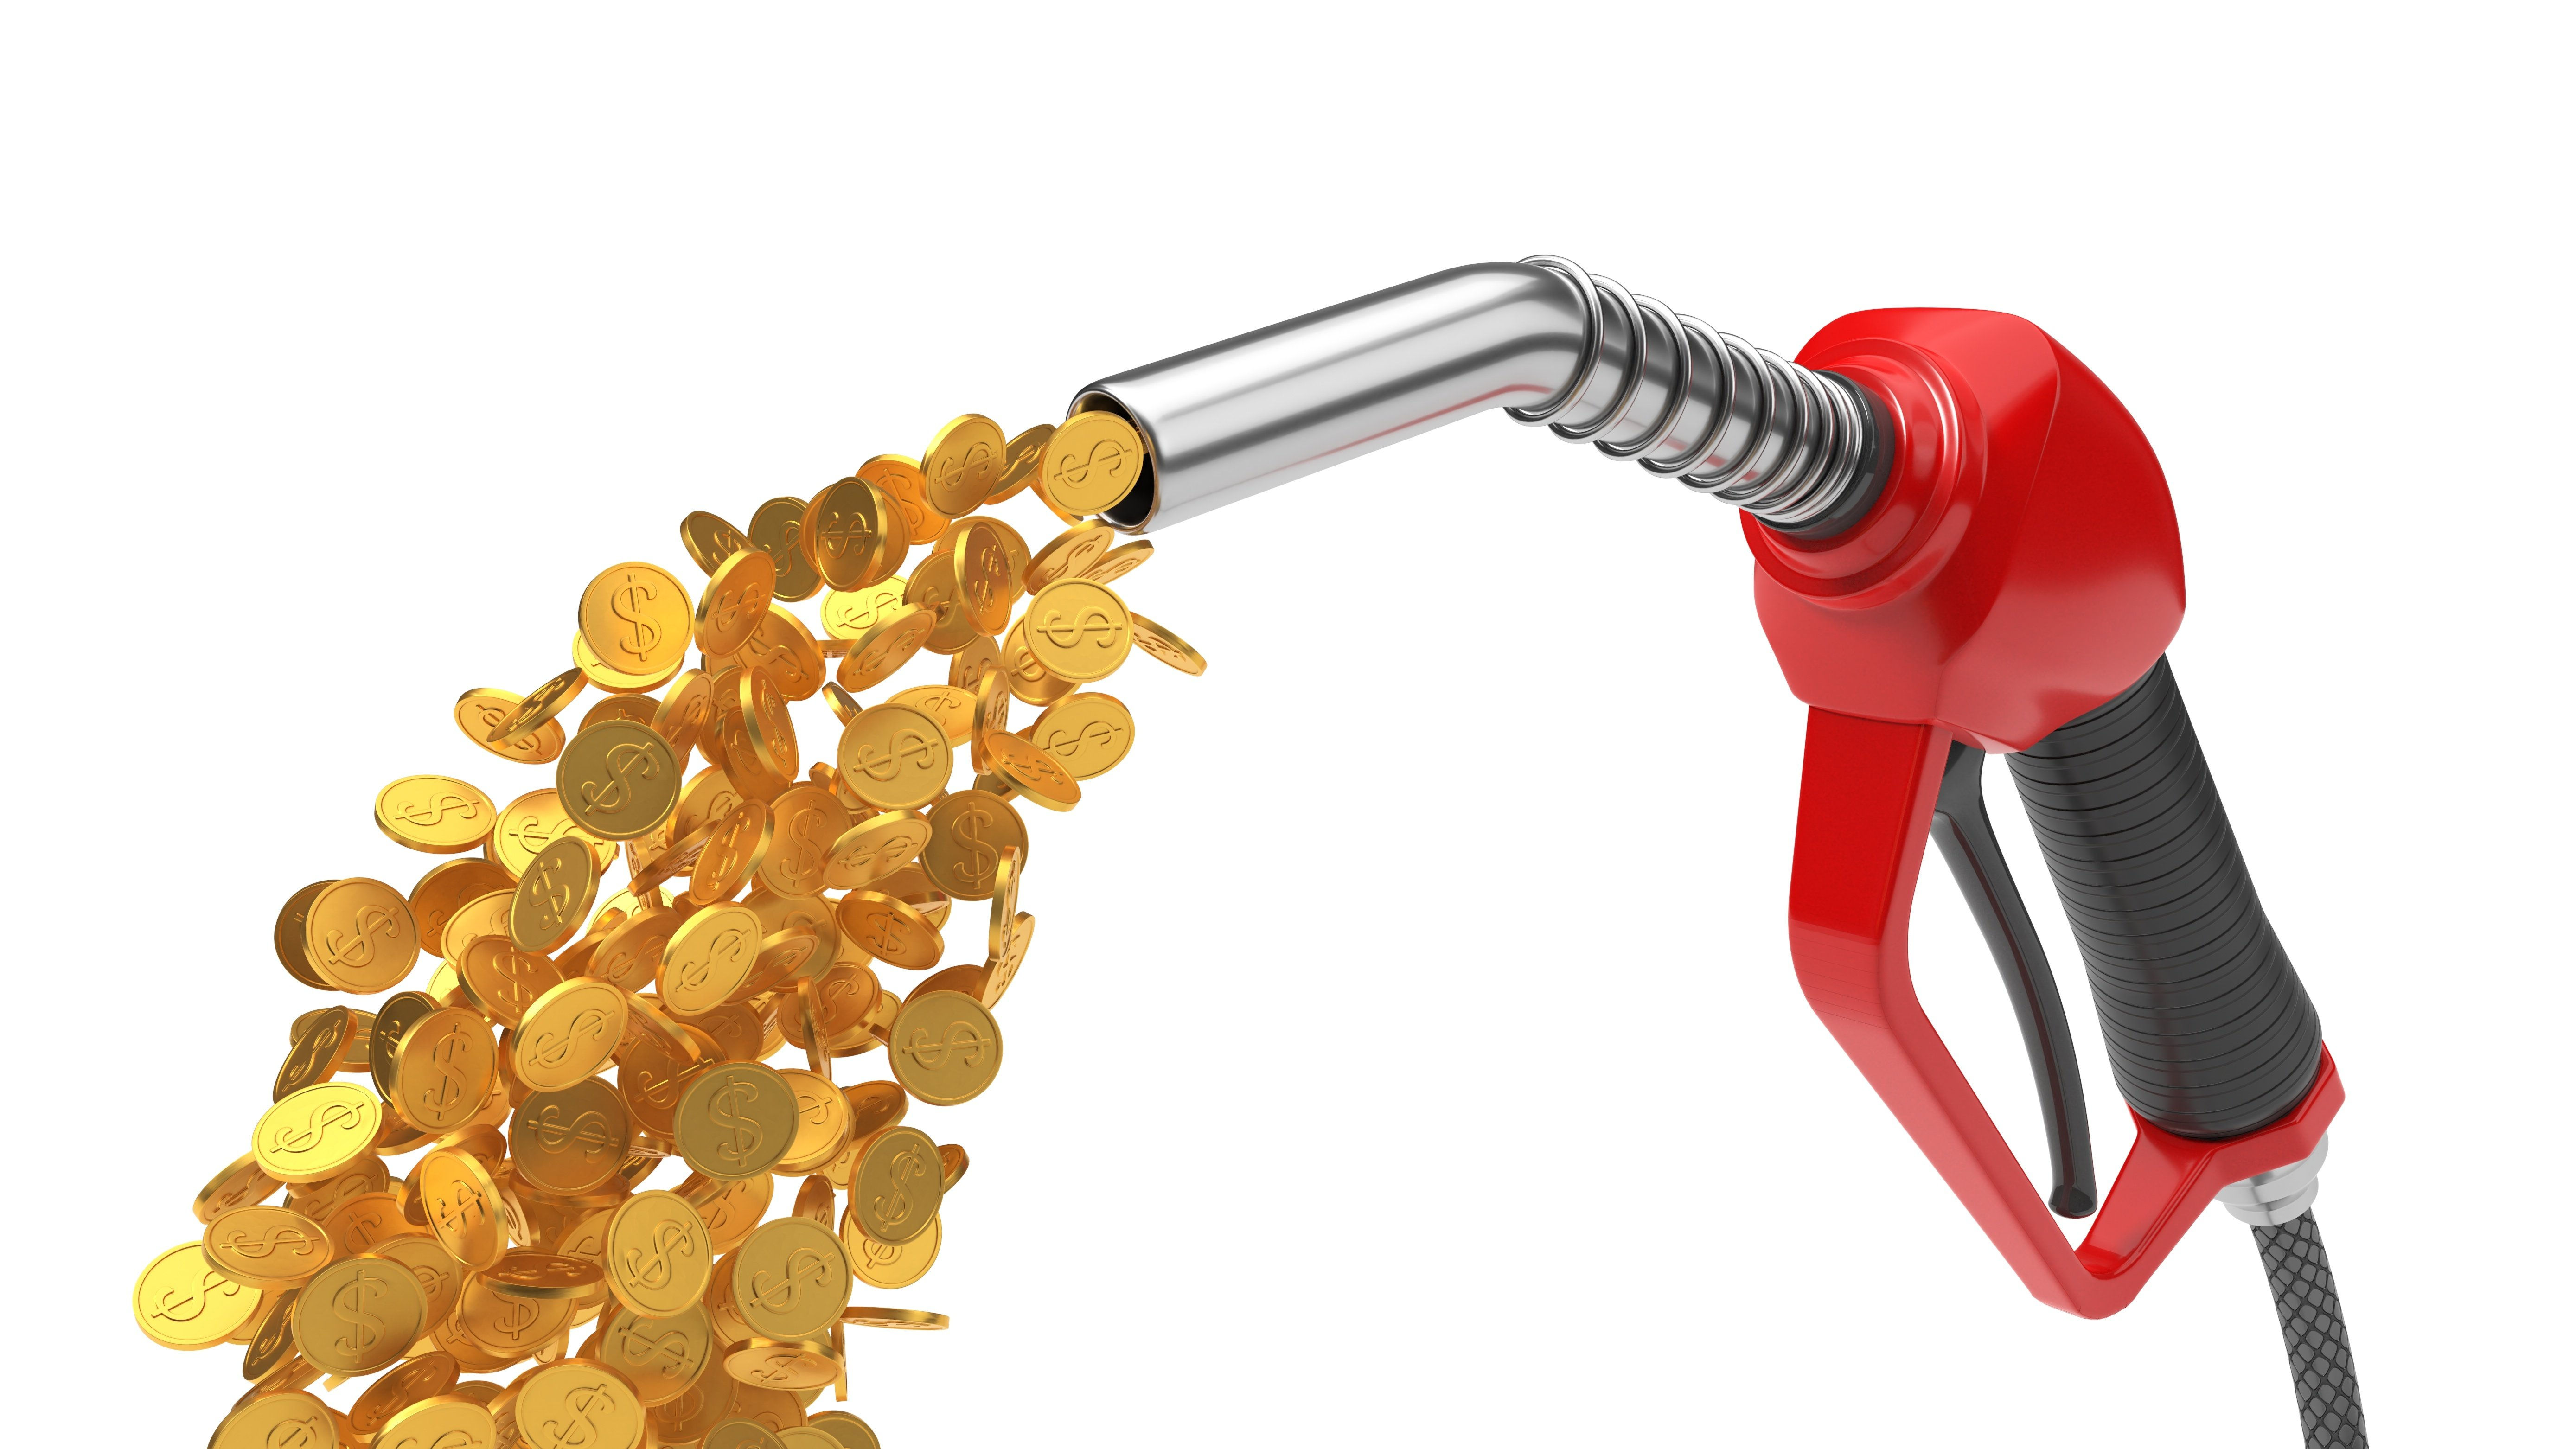 Money Pouring Out of Nozzle-AdobeStock_196006574